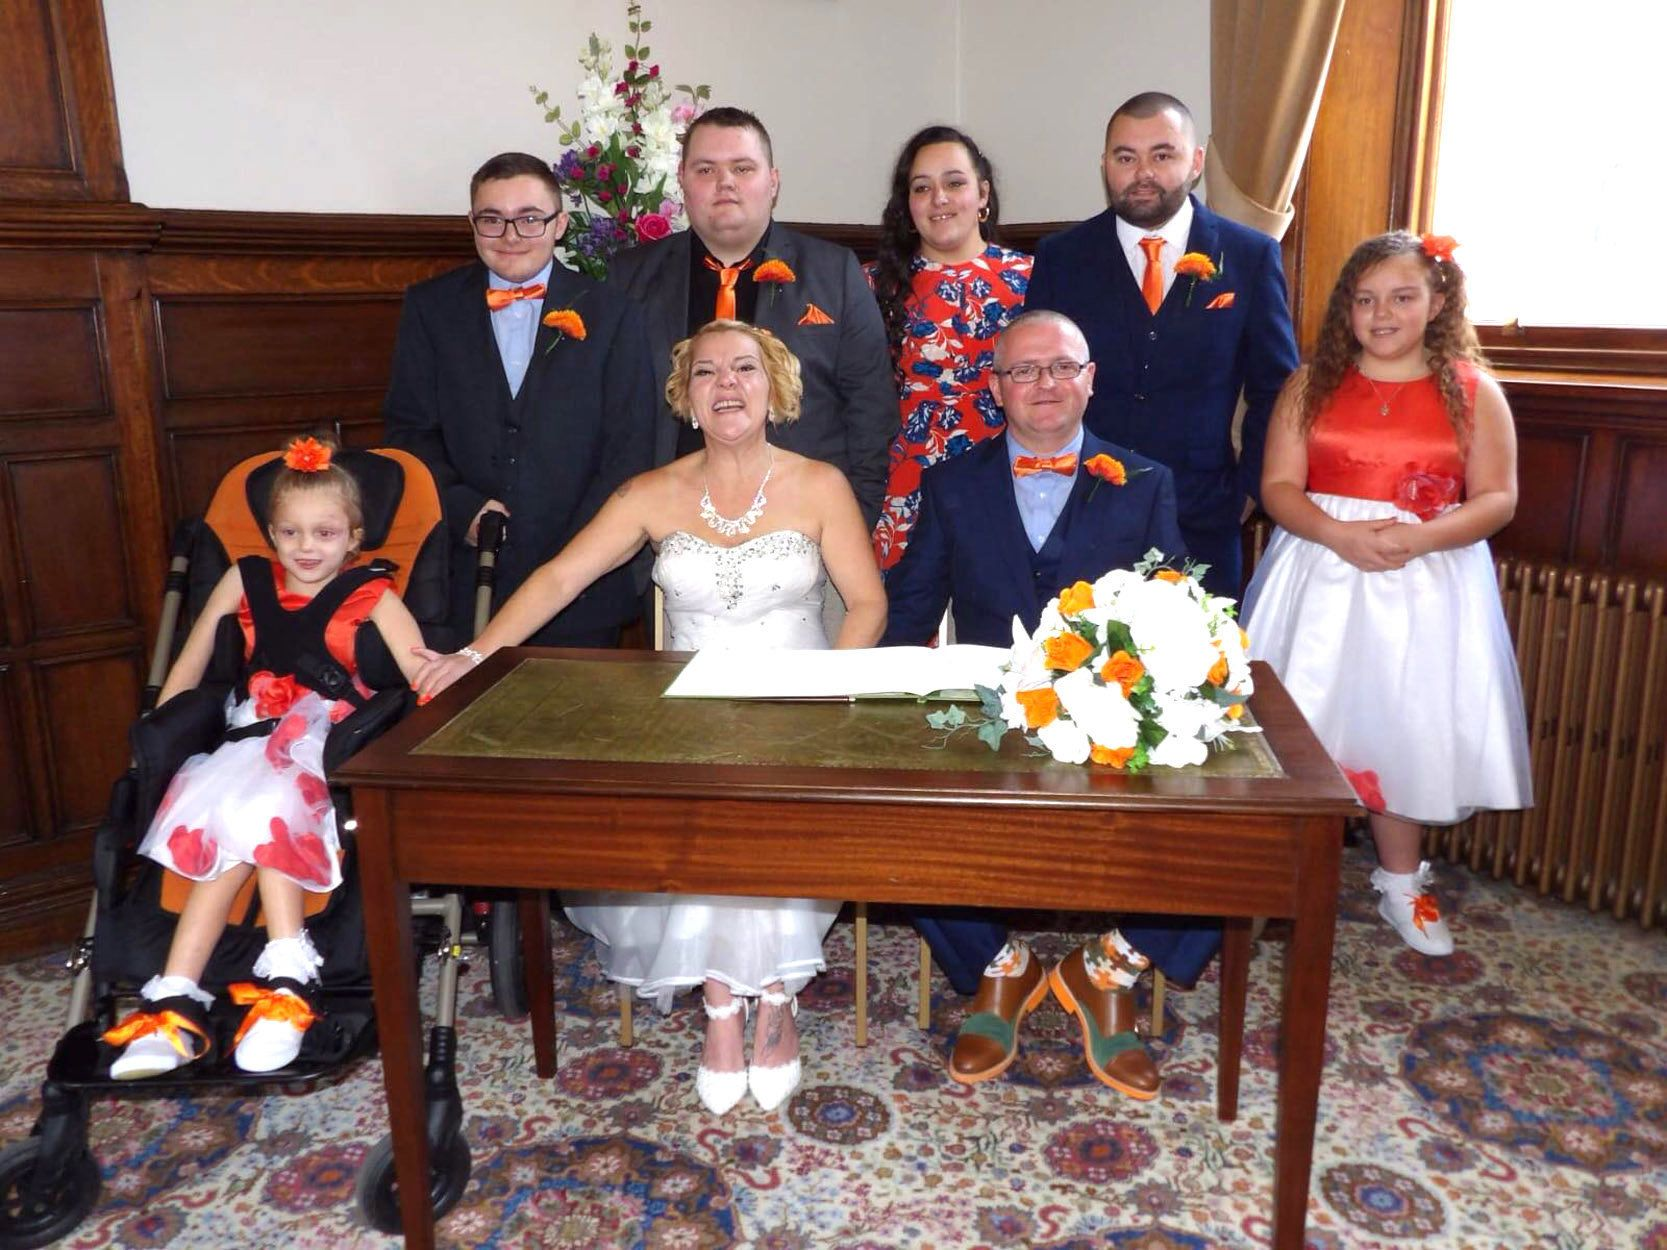 CHILD DEMENTIA: Bride Whose 6-Year-Old Daughter Has Dementia On Why She Got Married On Her